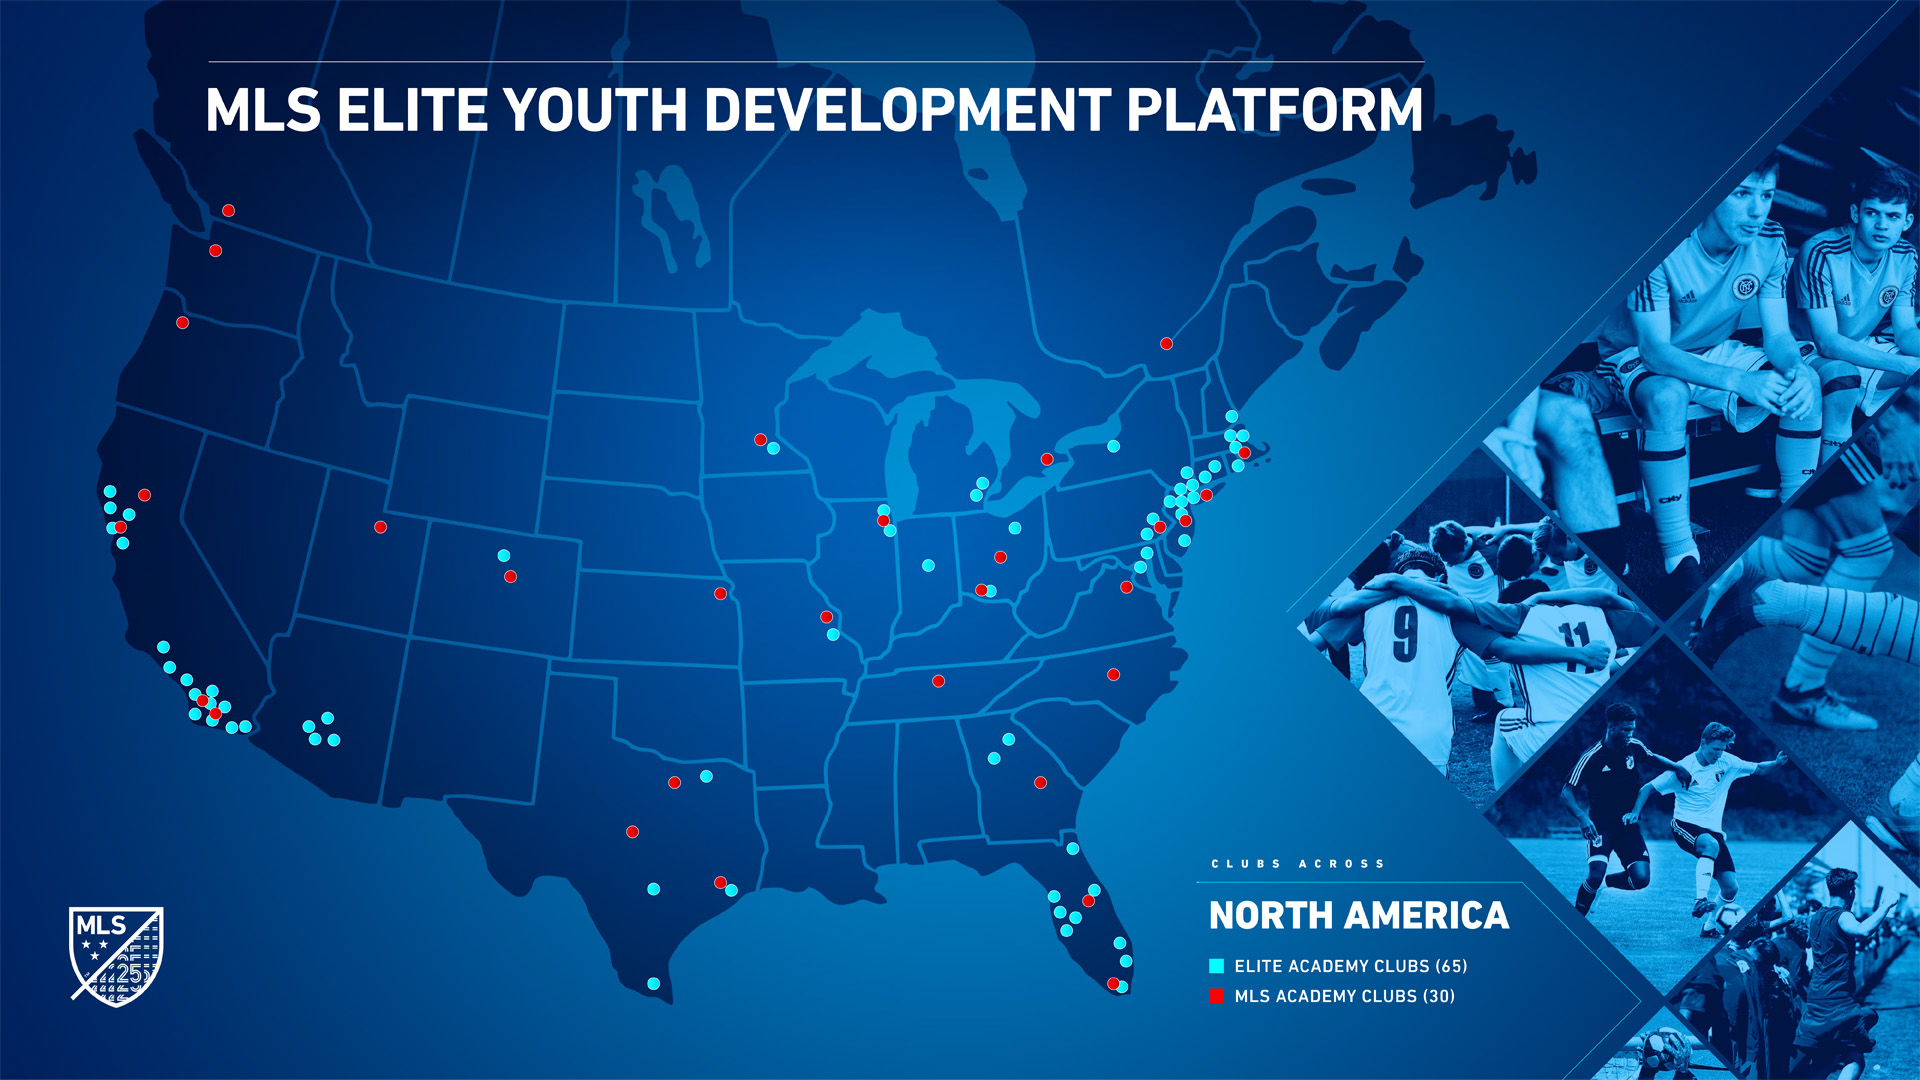 MLS Elite Youth Development Platform